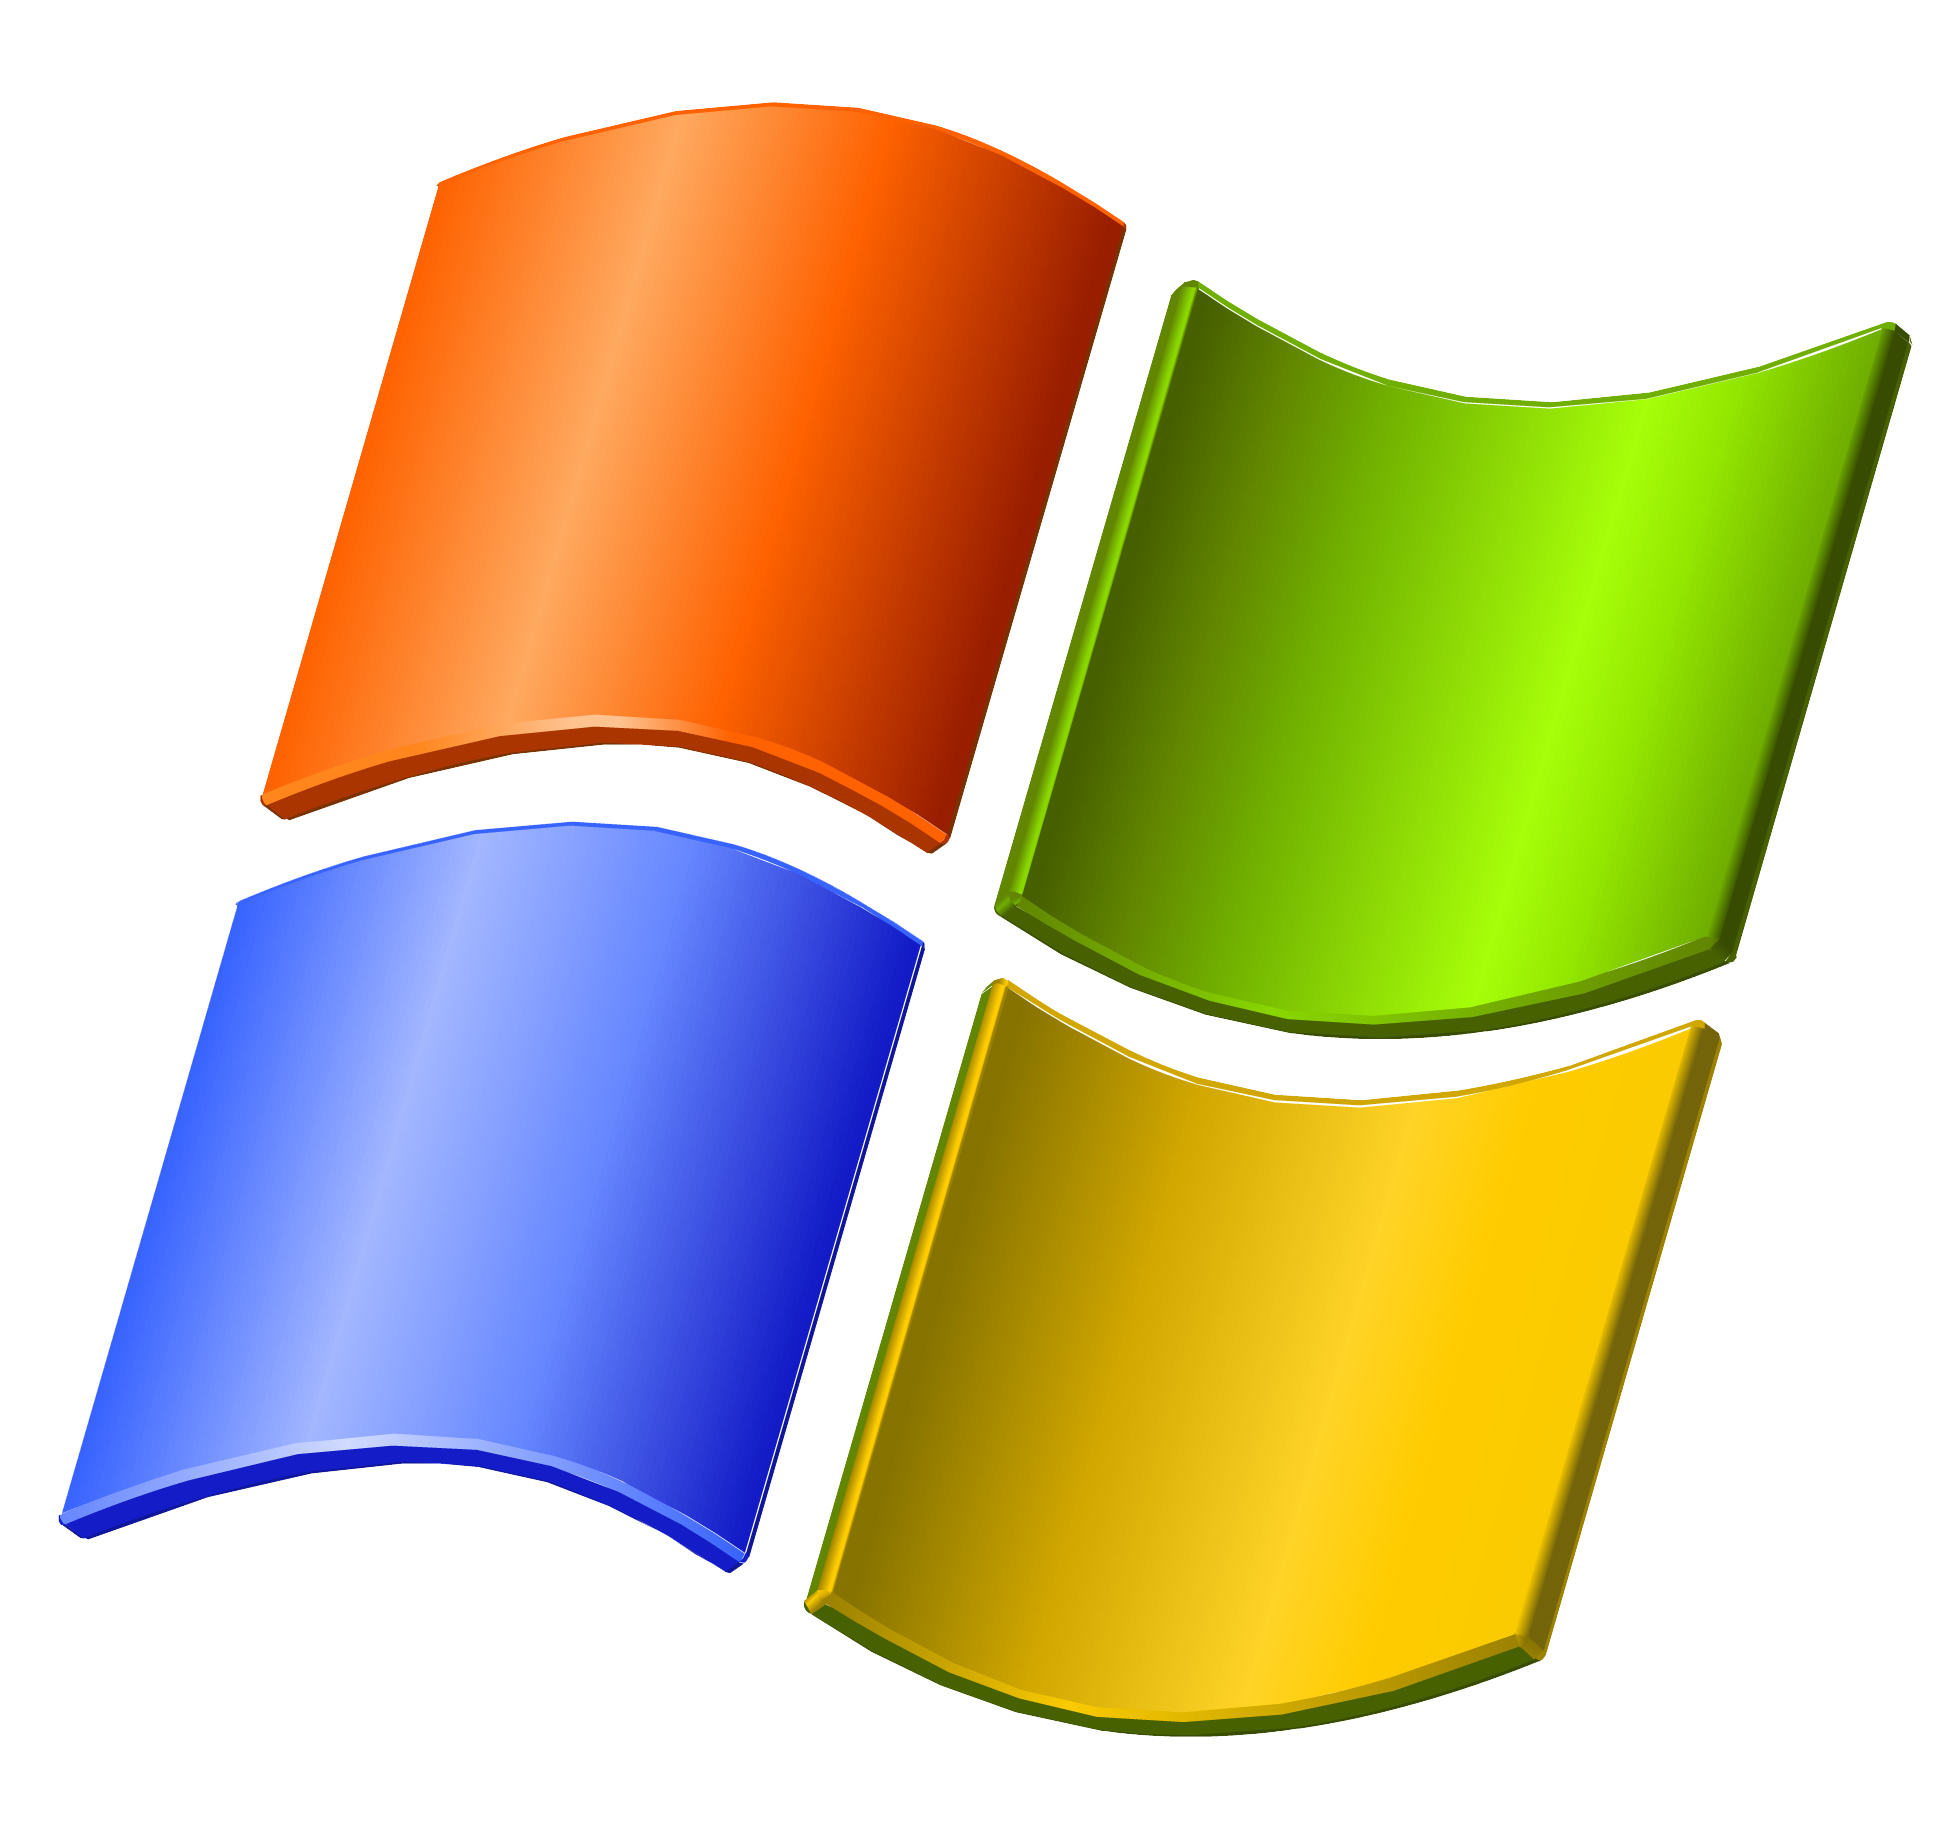 logo-windows.png